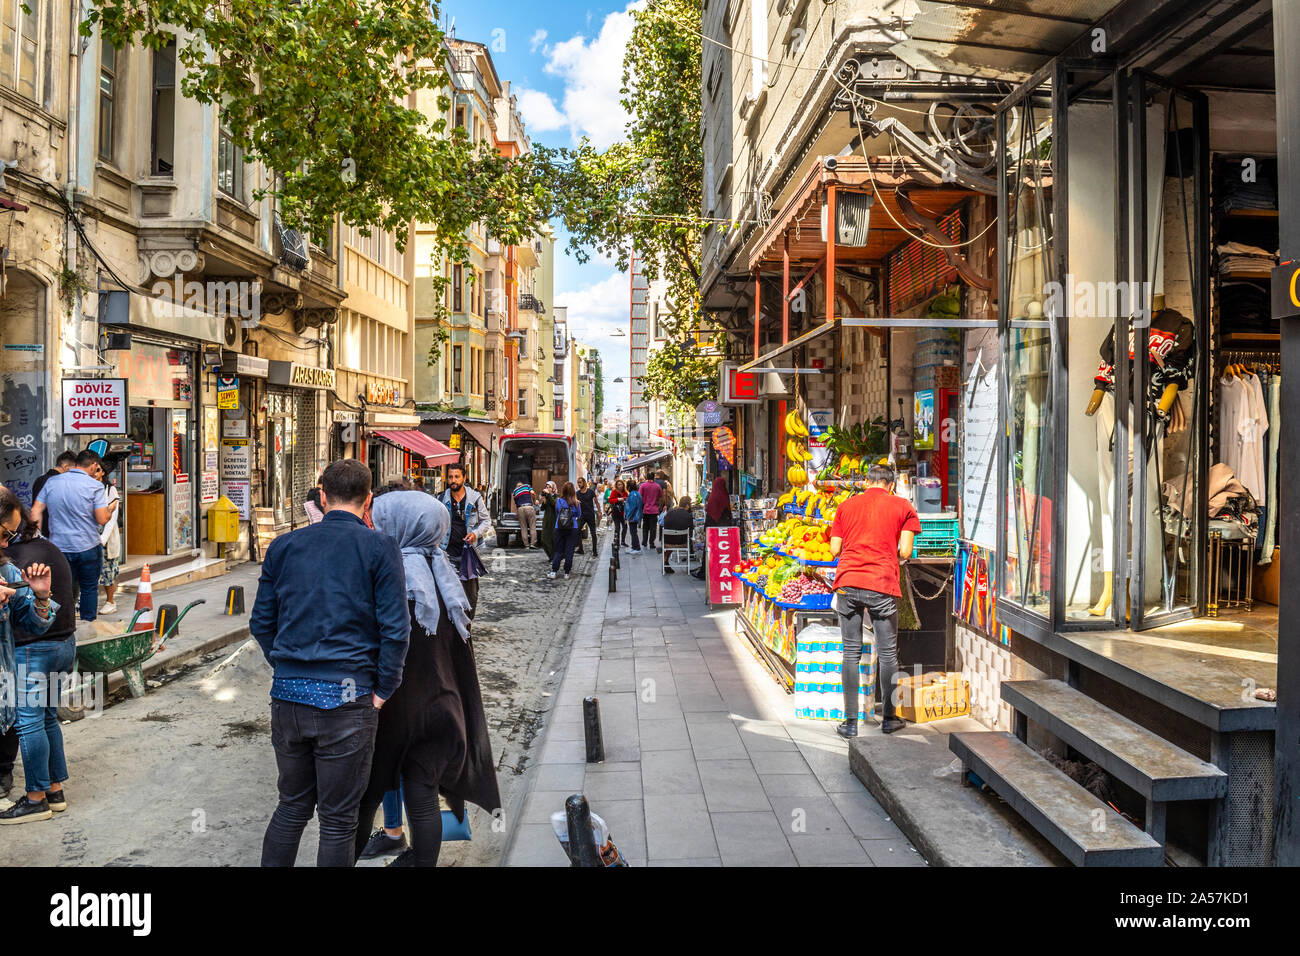 A busy street in the Galata Karakoy district of Istanbul Turkey with fruit stand, shops, tourists, Turks and street construction, in Istanbul Turkey. Stock Photo